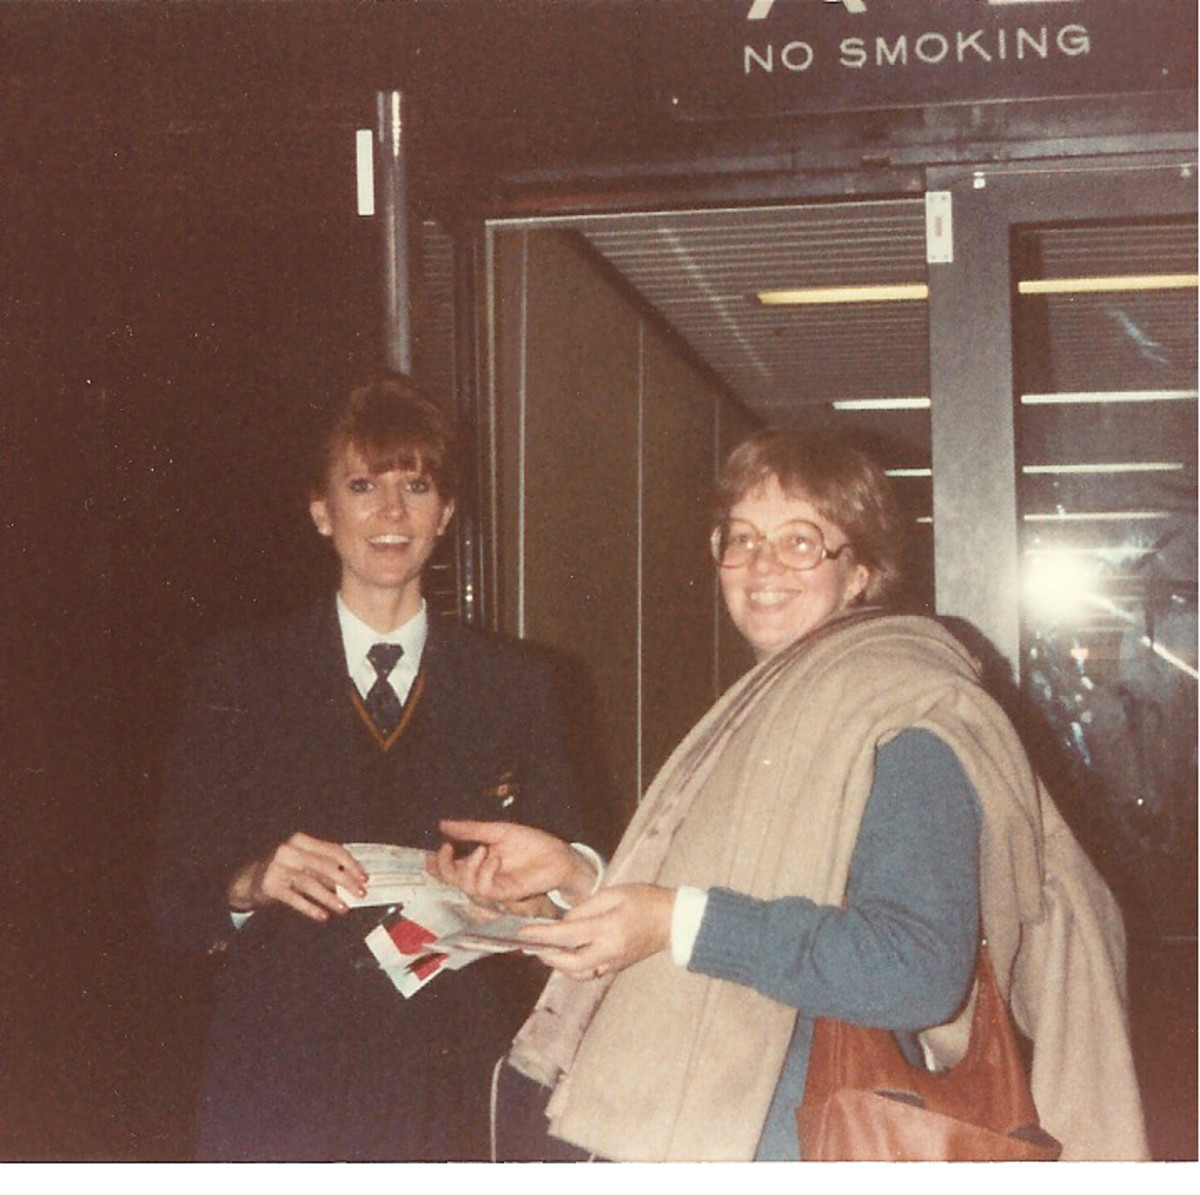 Here I am, boarding the plane to Australia. Note my sweater and heavy coat, which I would not need in sunny Australia.